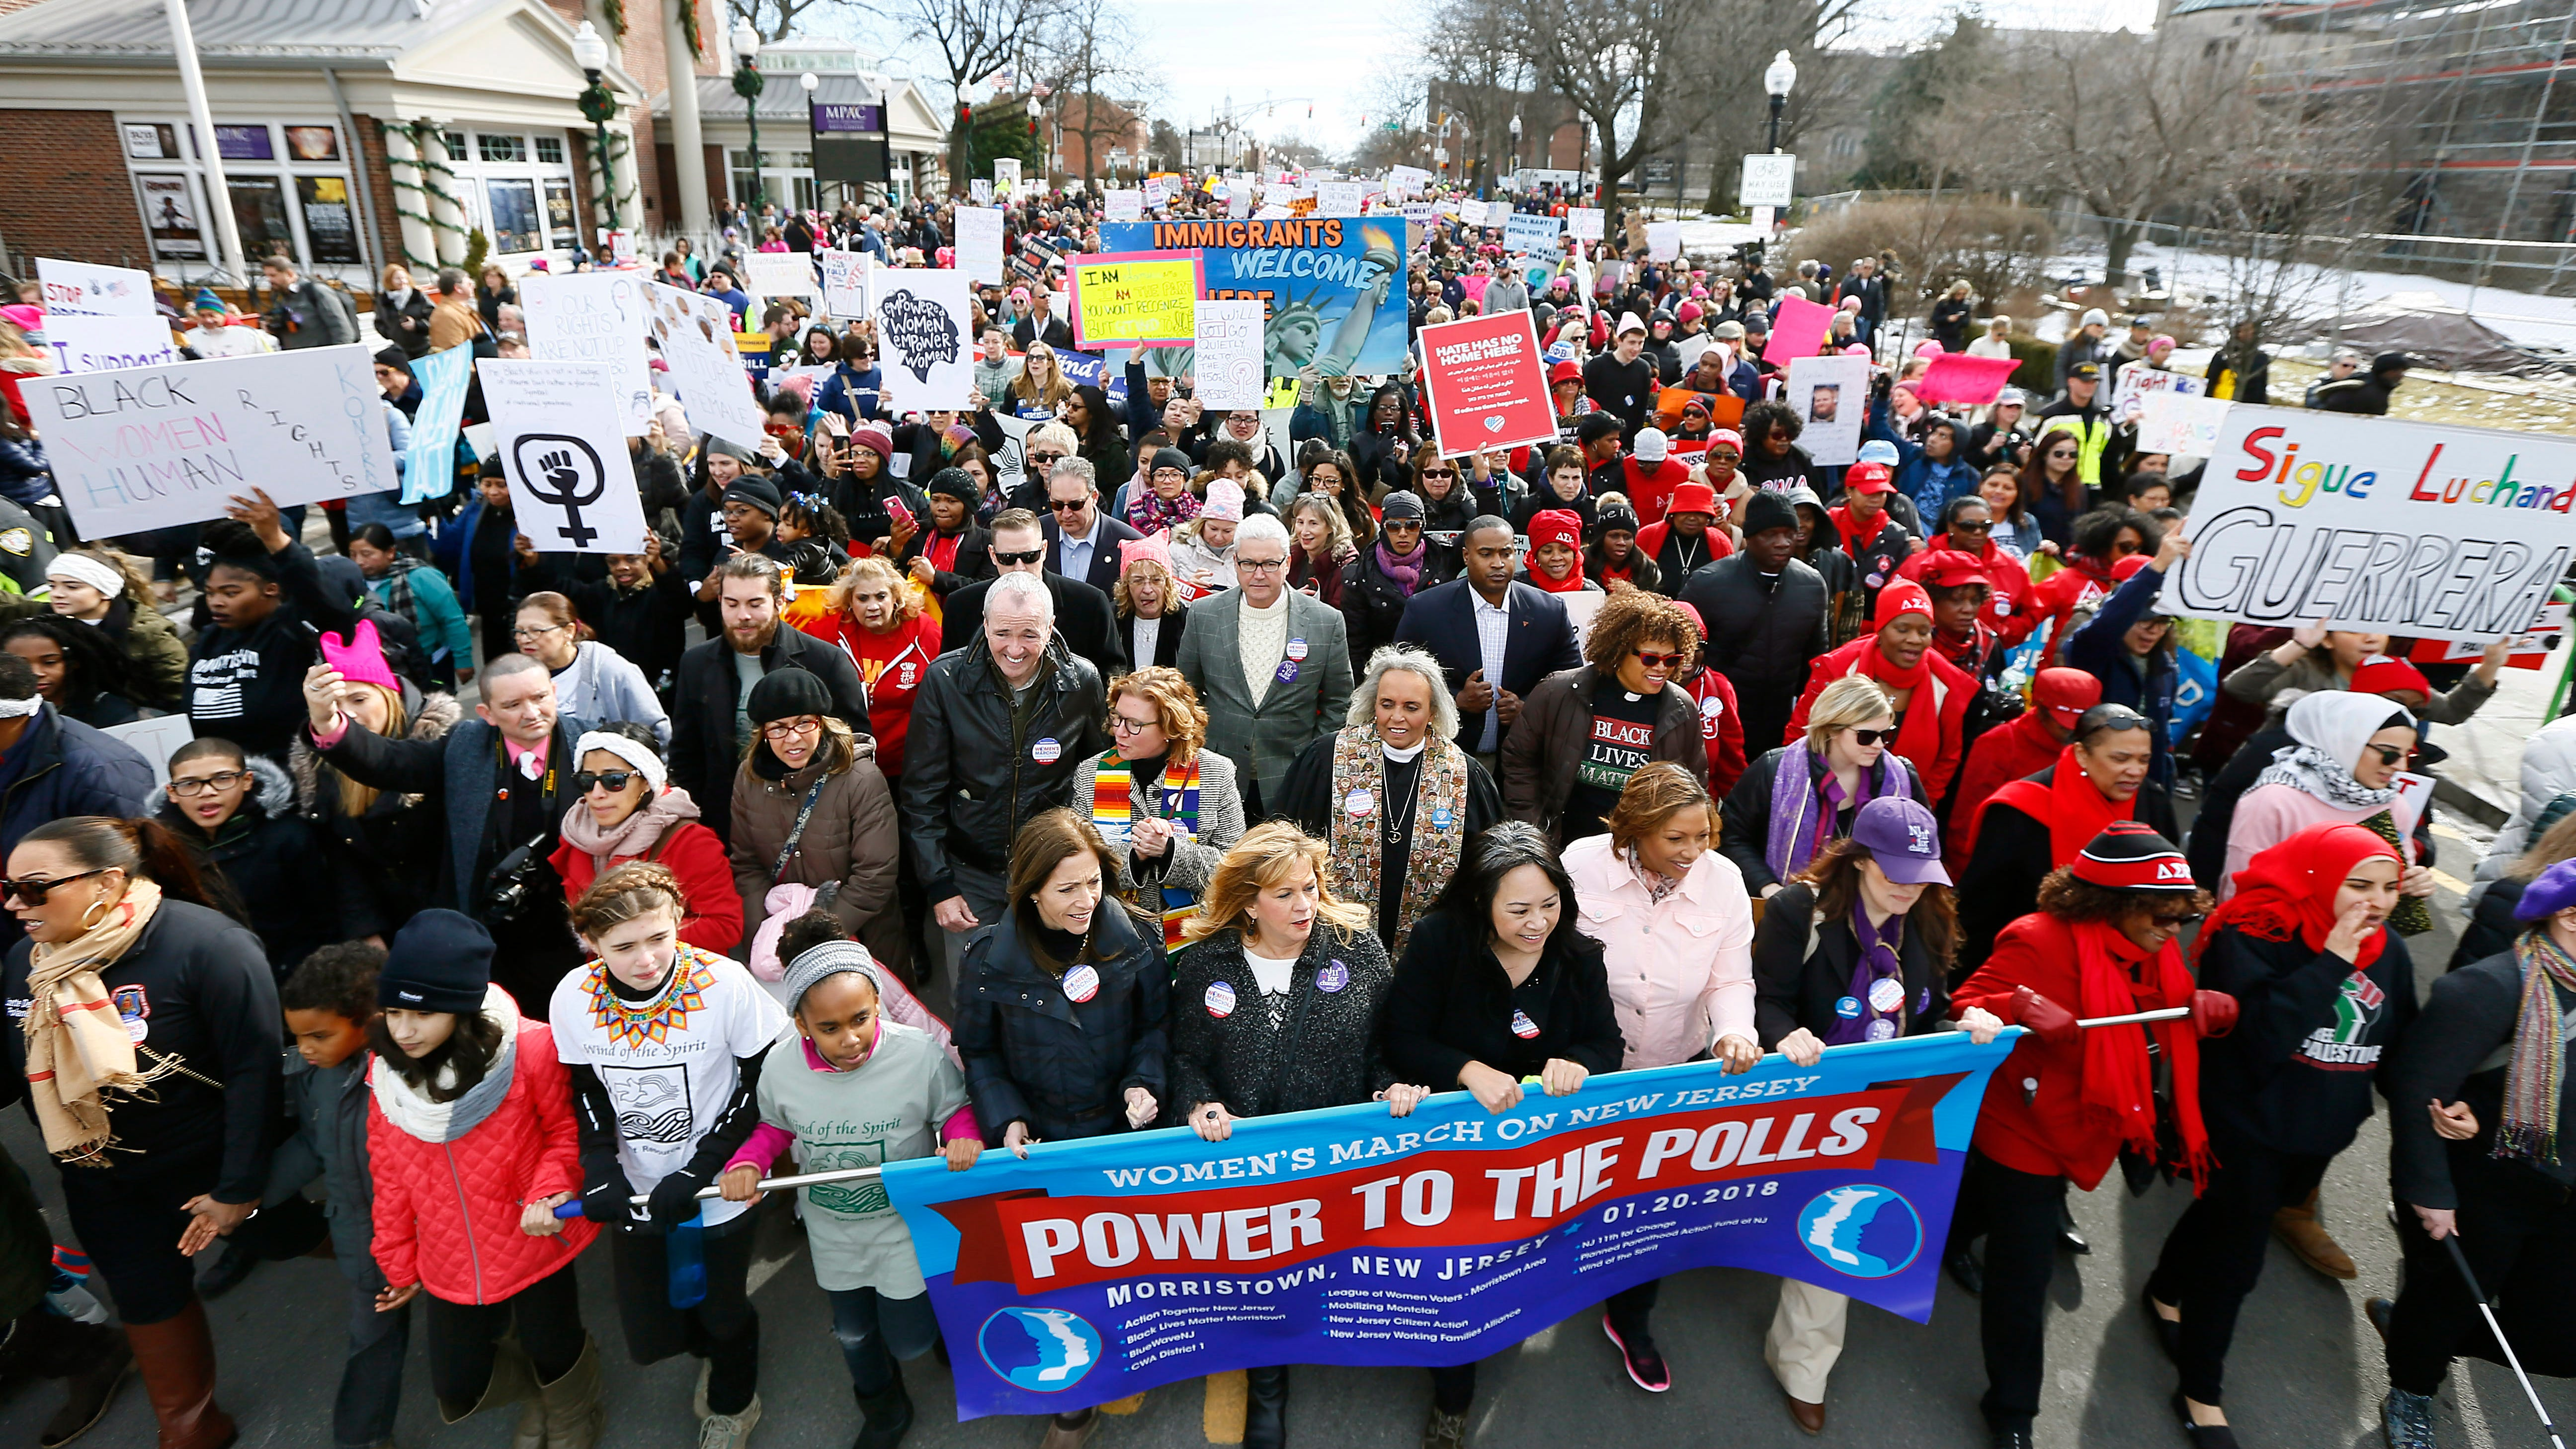 Anti-Semitism controversy engulfing national Women's March sows divisions in New Jersey